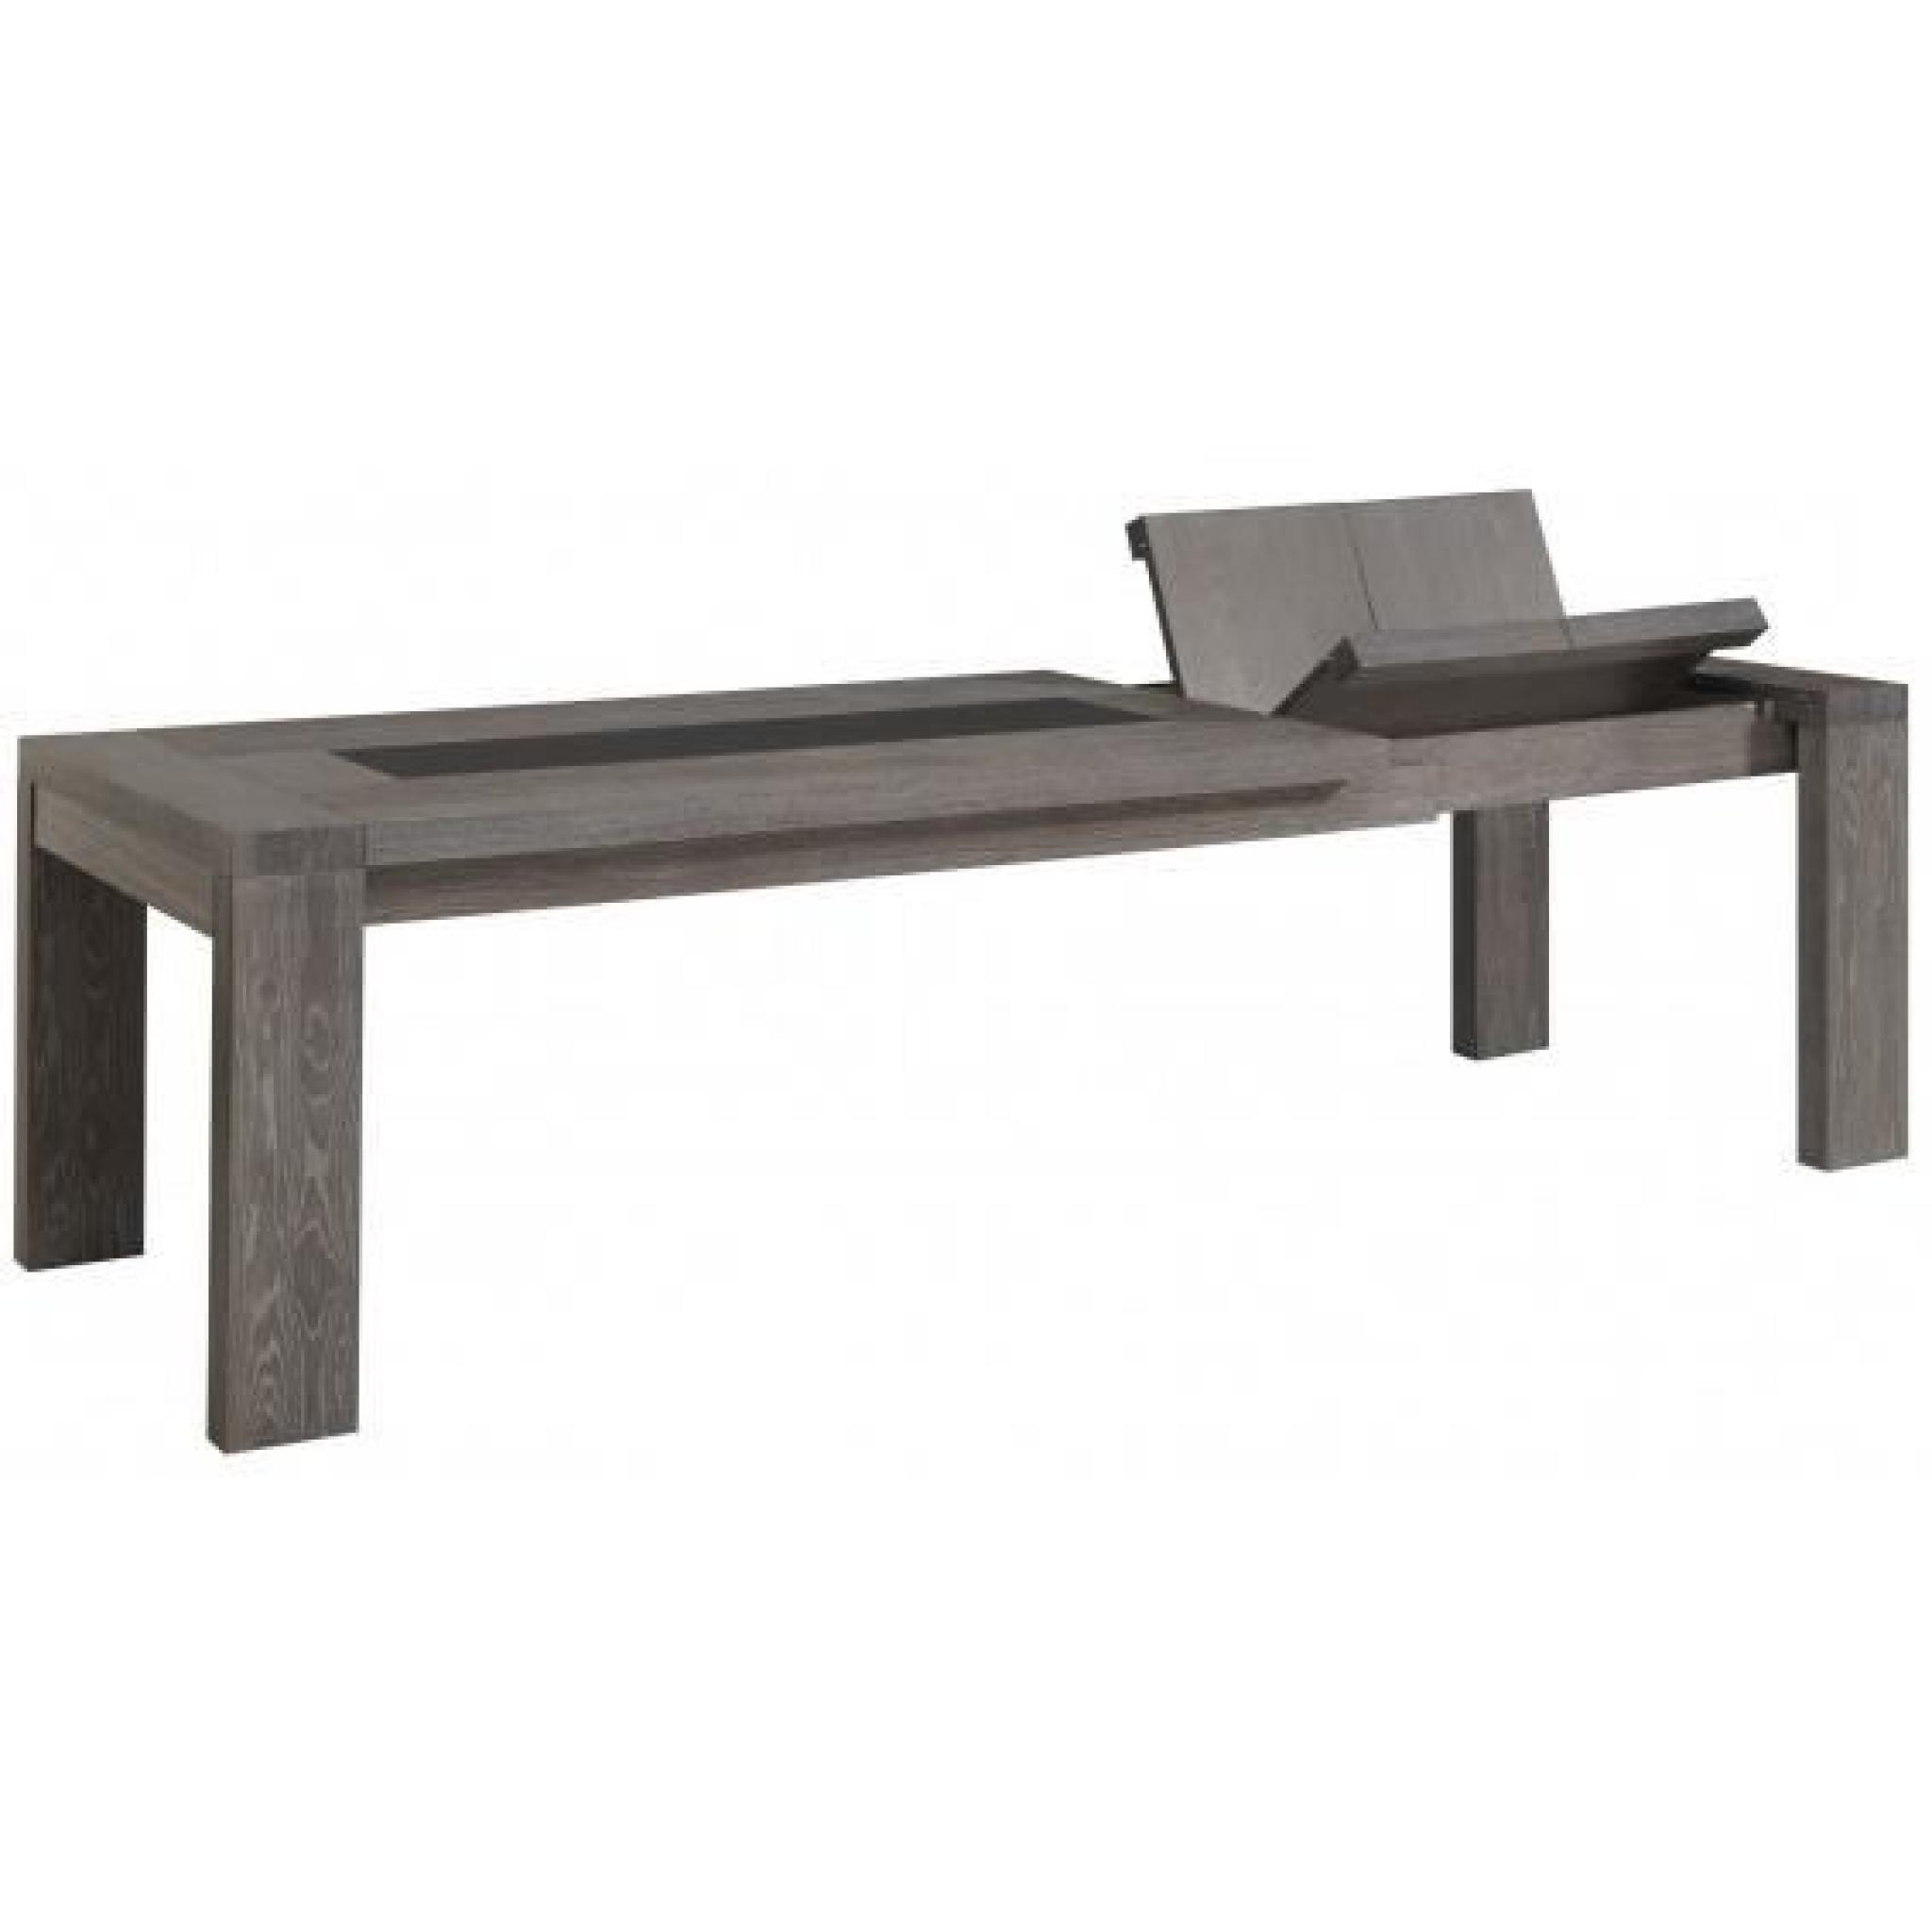 Dayton table rectangulaire avec allonges achat vente for Table pas cher